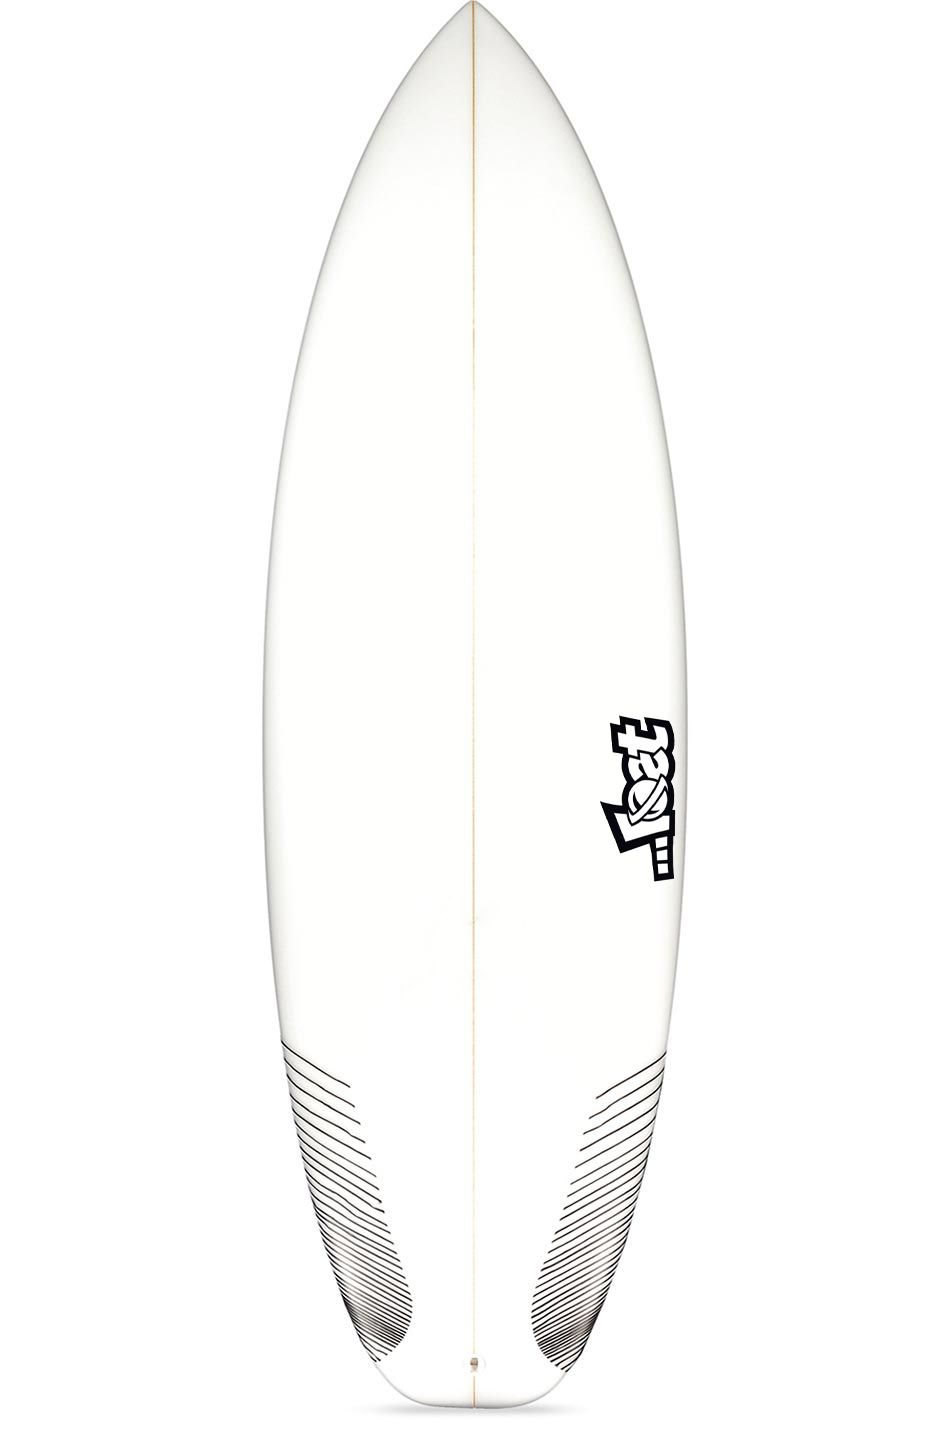 Prancha Surf Lost 5'10 PUDDLE JUMPER HP Squash Tail - White FCS II Multisystem 5ft10